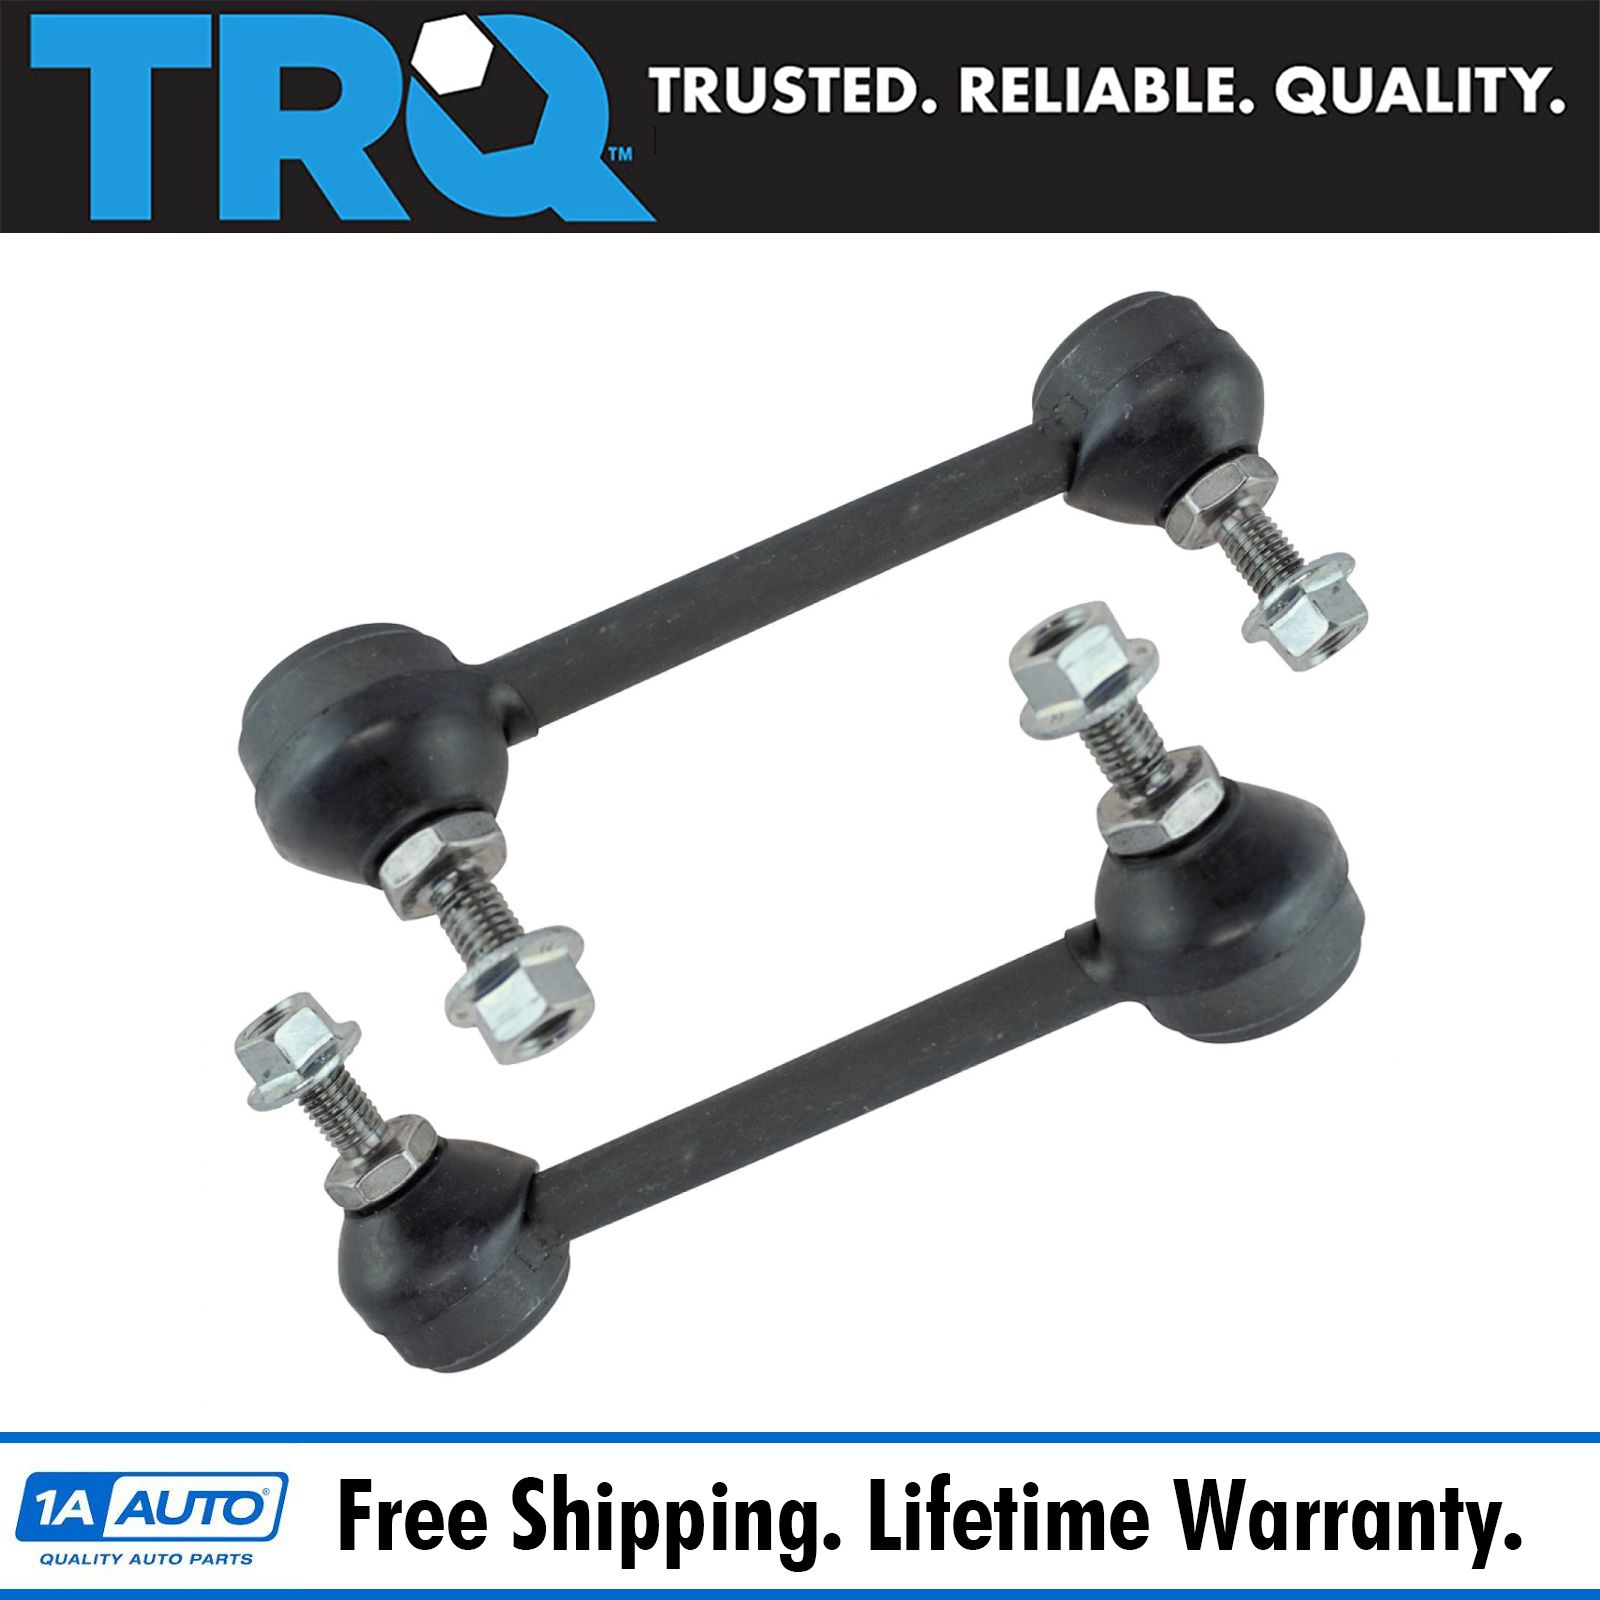 Stabilizer Sway Bar End Link Front LH RH Kit Pair Set for 95-04 Toyota Tacoma